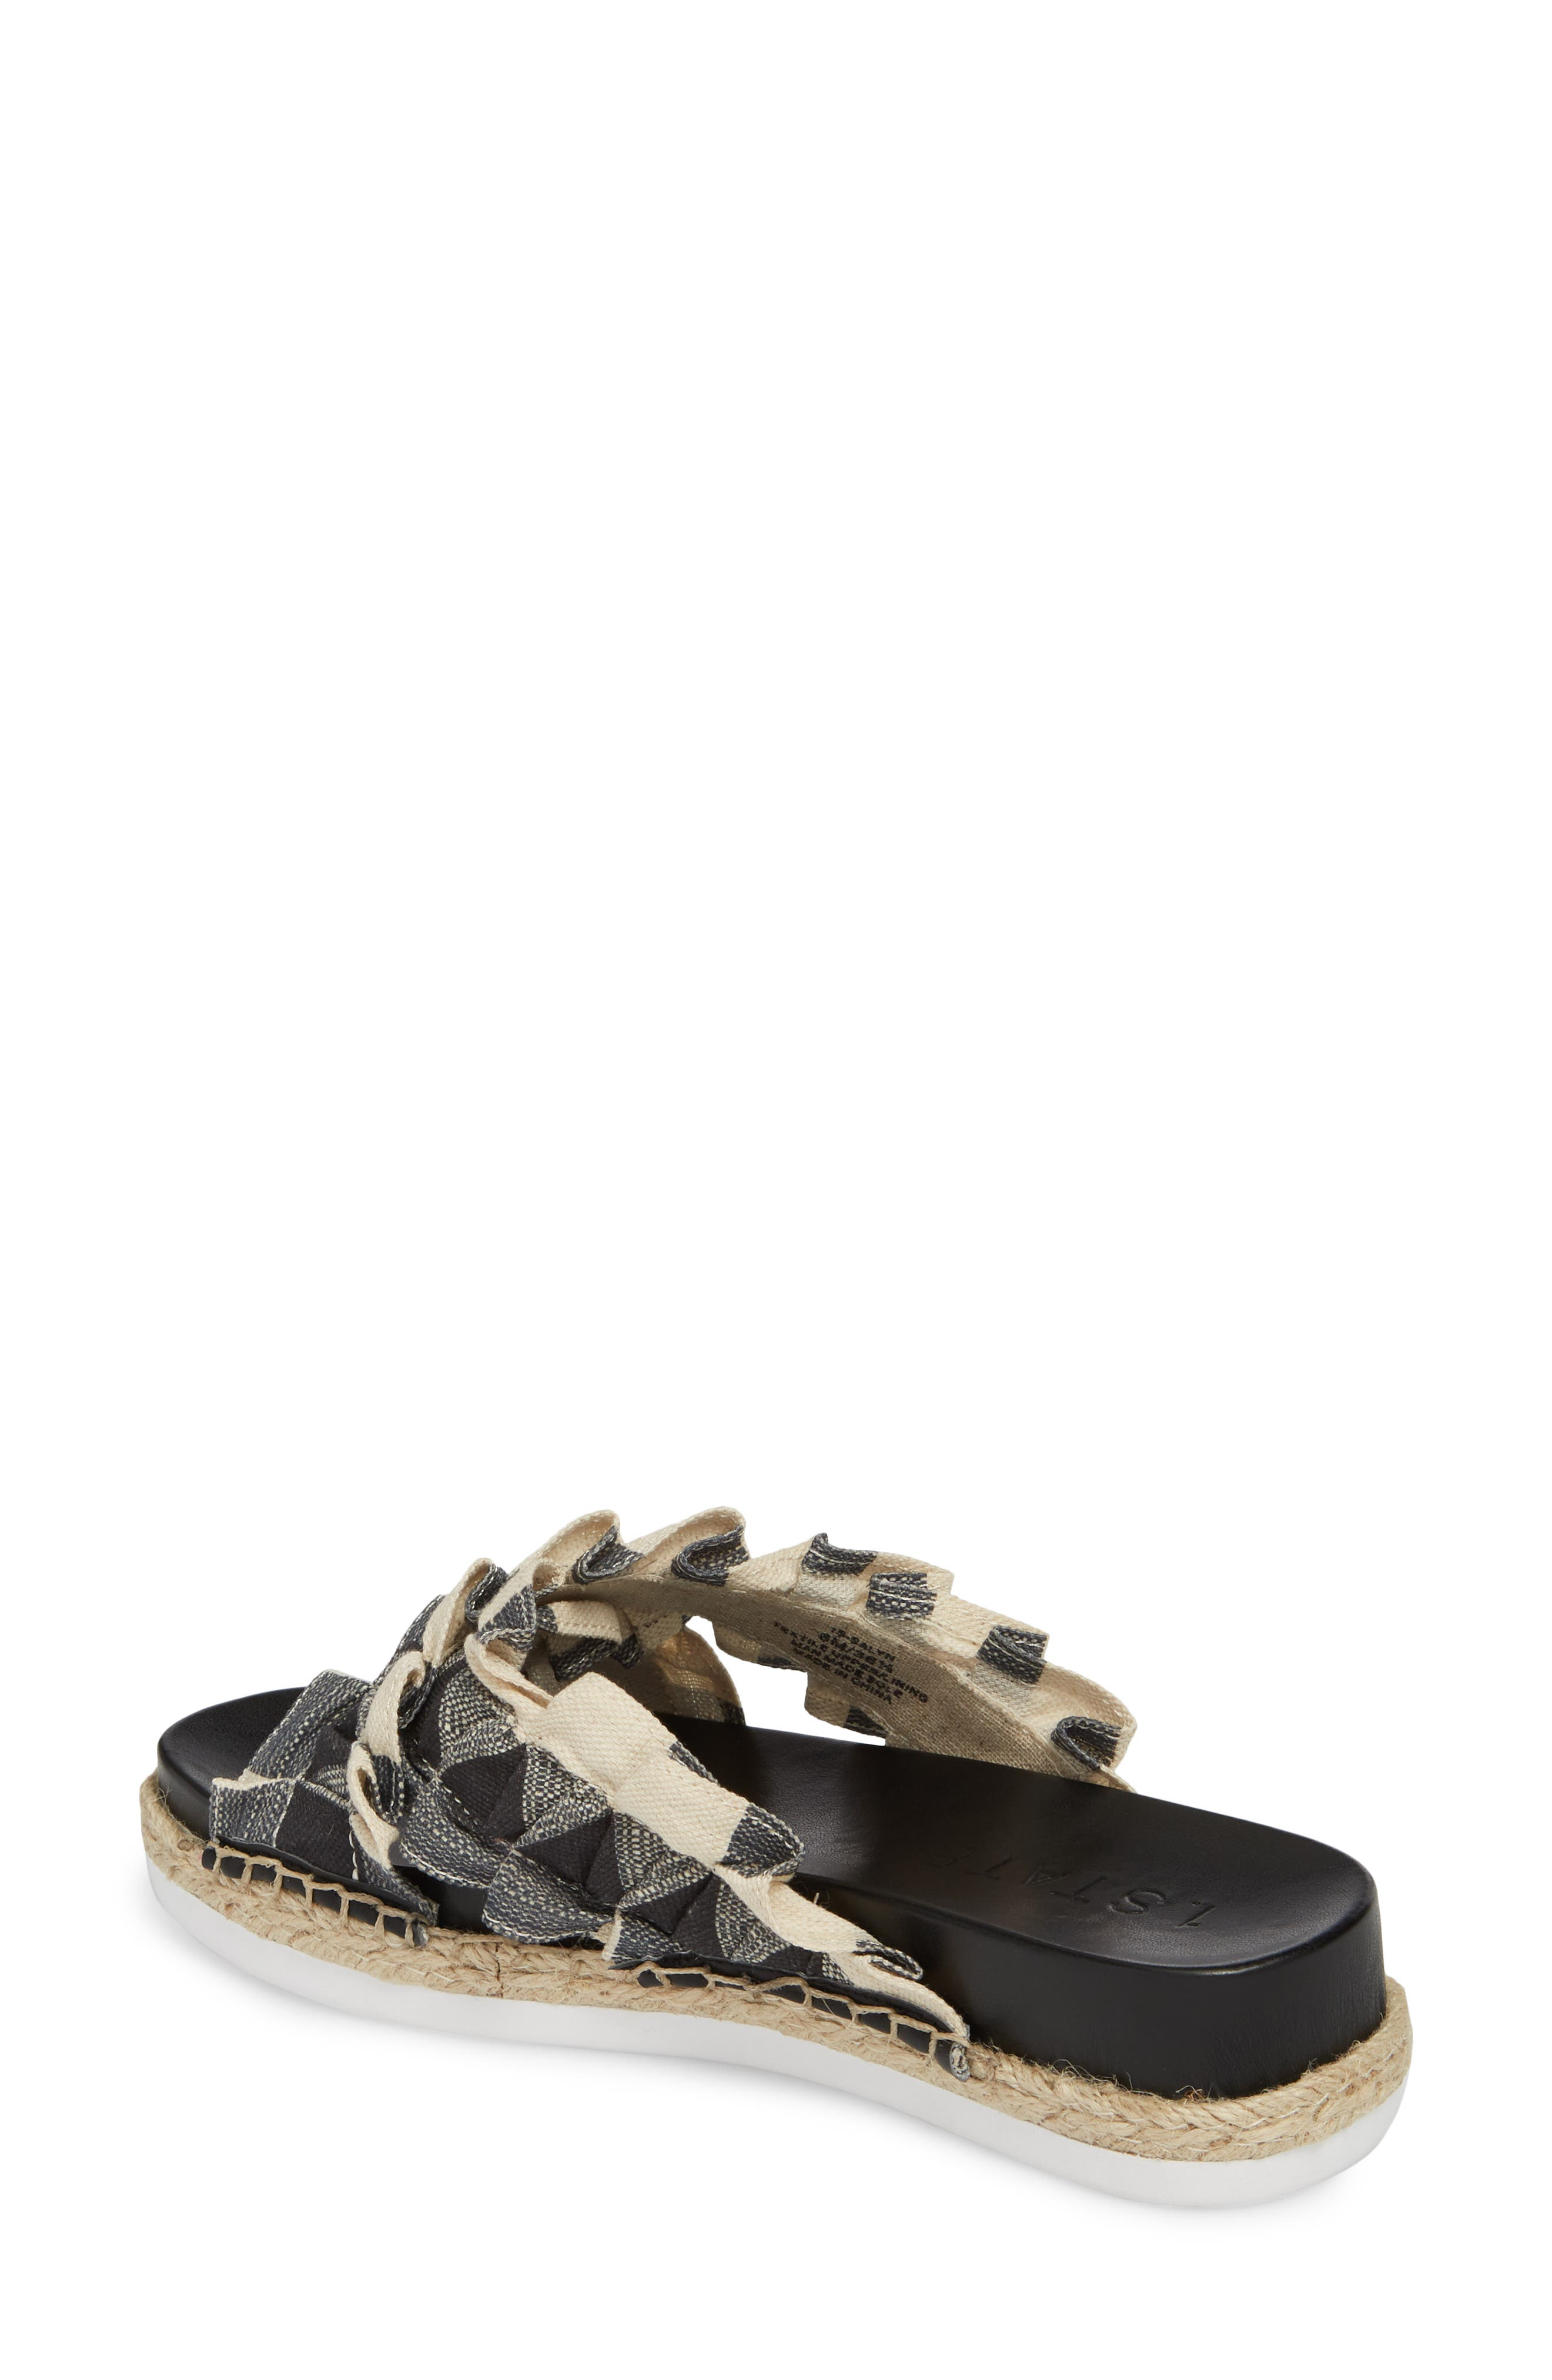 Salyn Slide Sandal,                             Alternate thumbnail 2, color,                             BLACK GINGHAM LINEN FABRIC